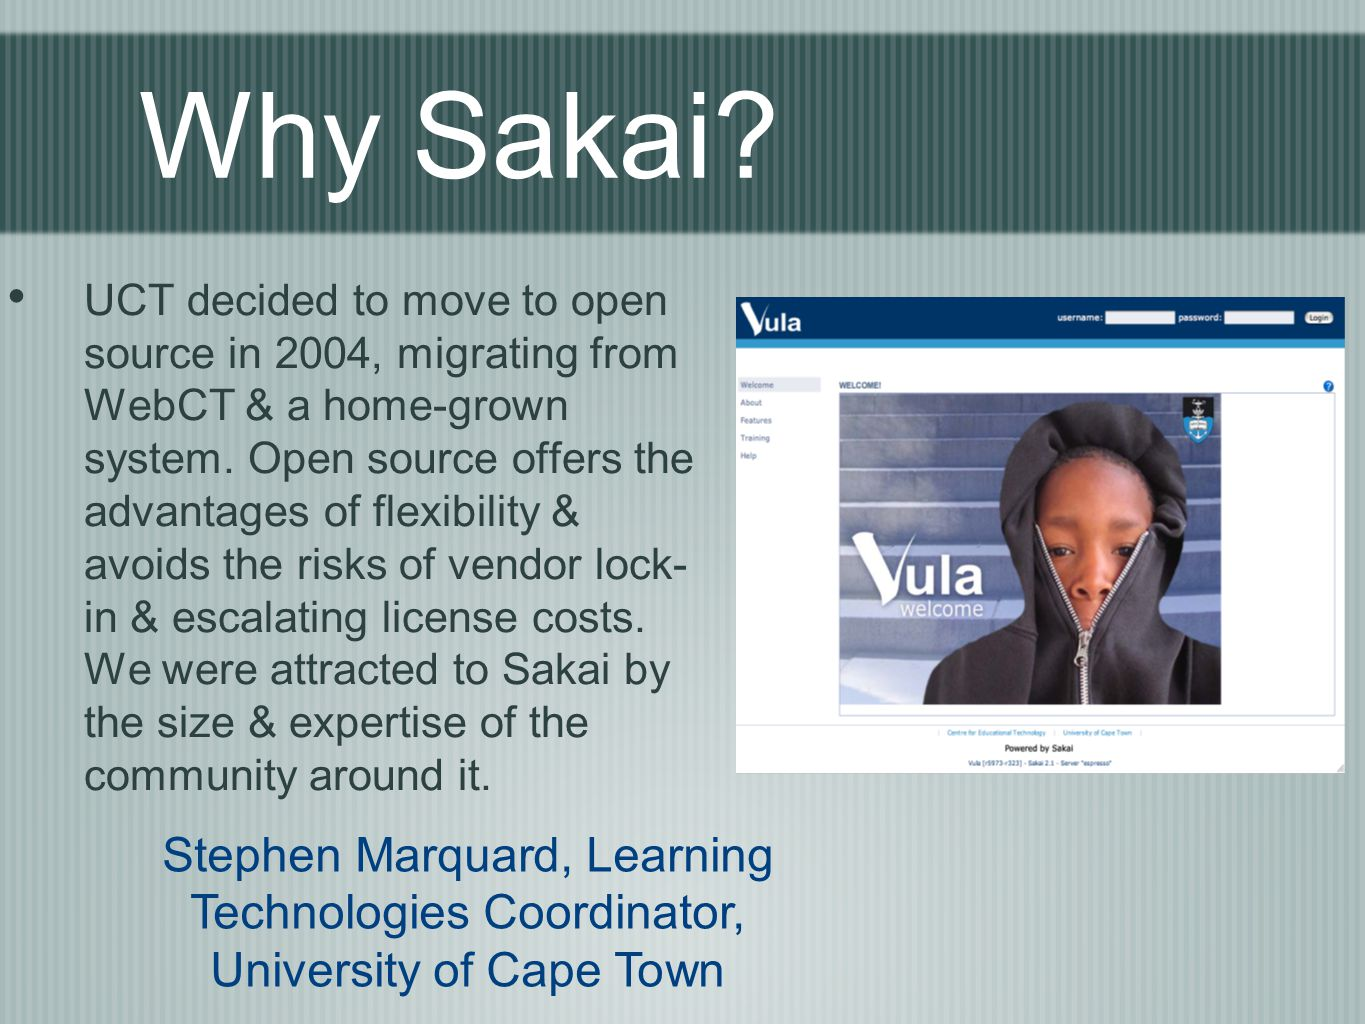 Why Sakai. UCT decided to move to open source in 2004, migrating from WebCT & a home-grown system.